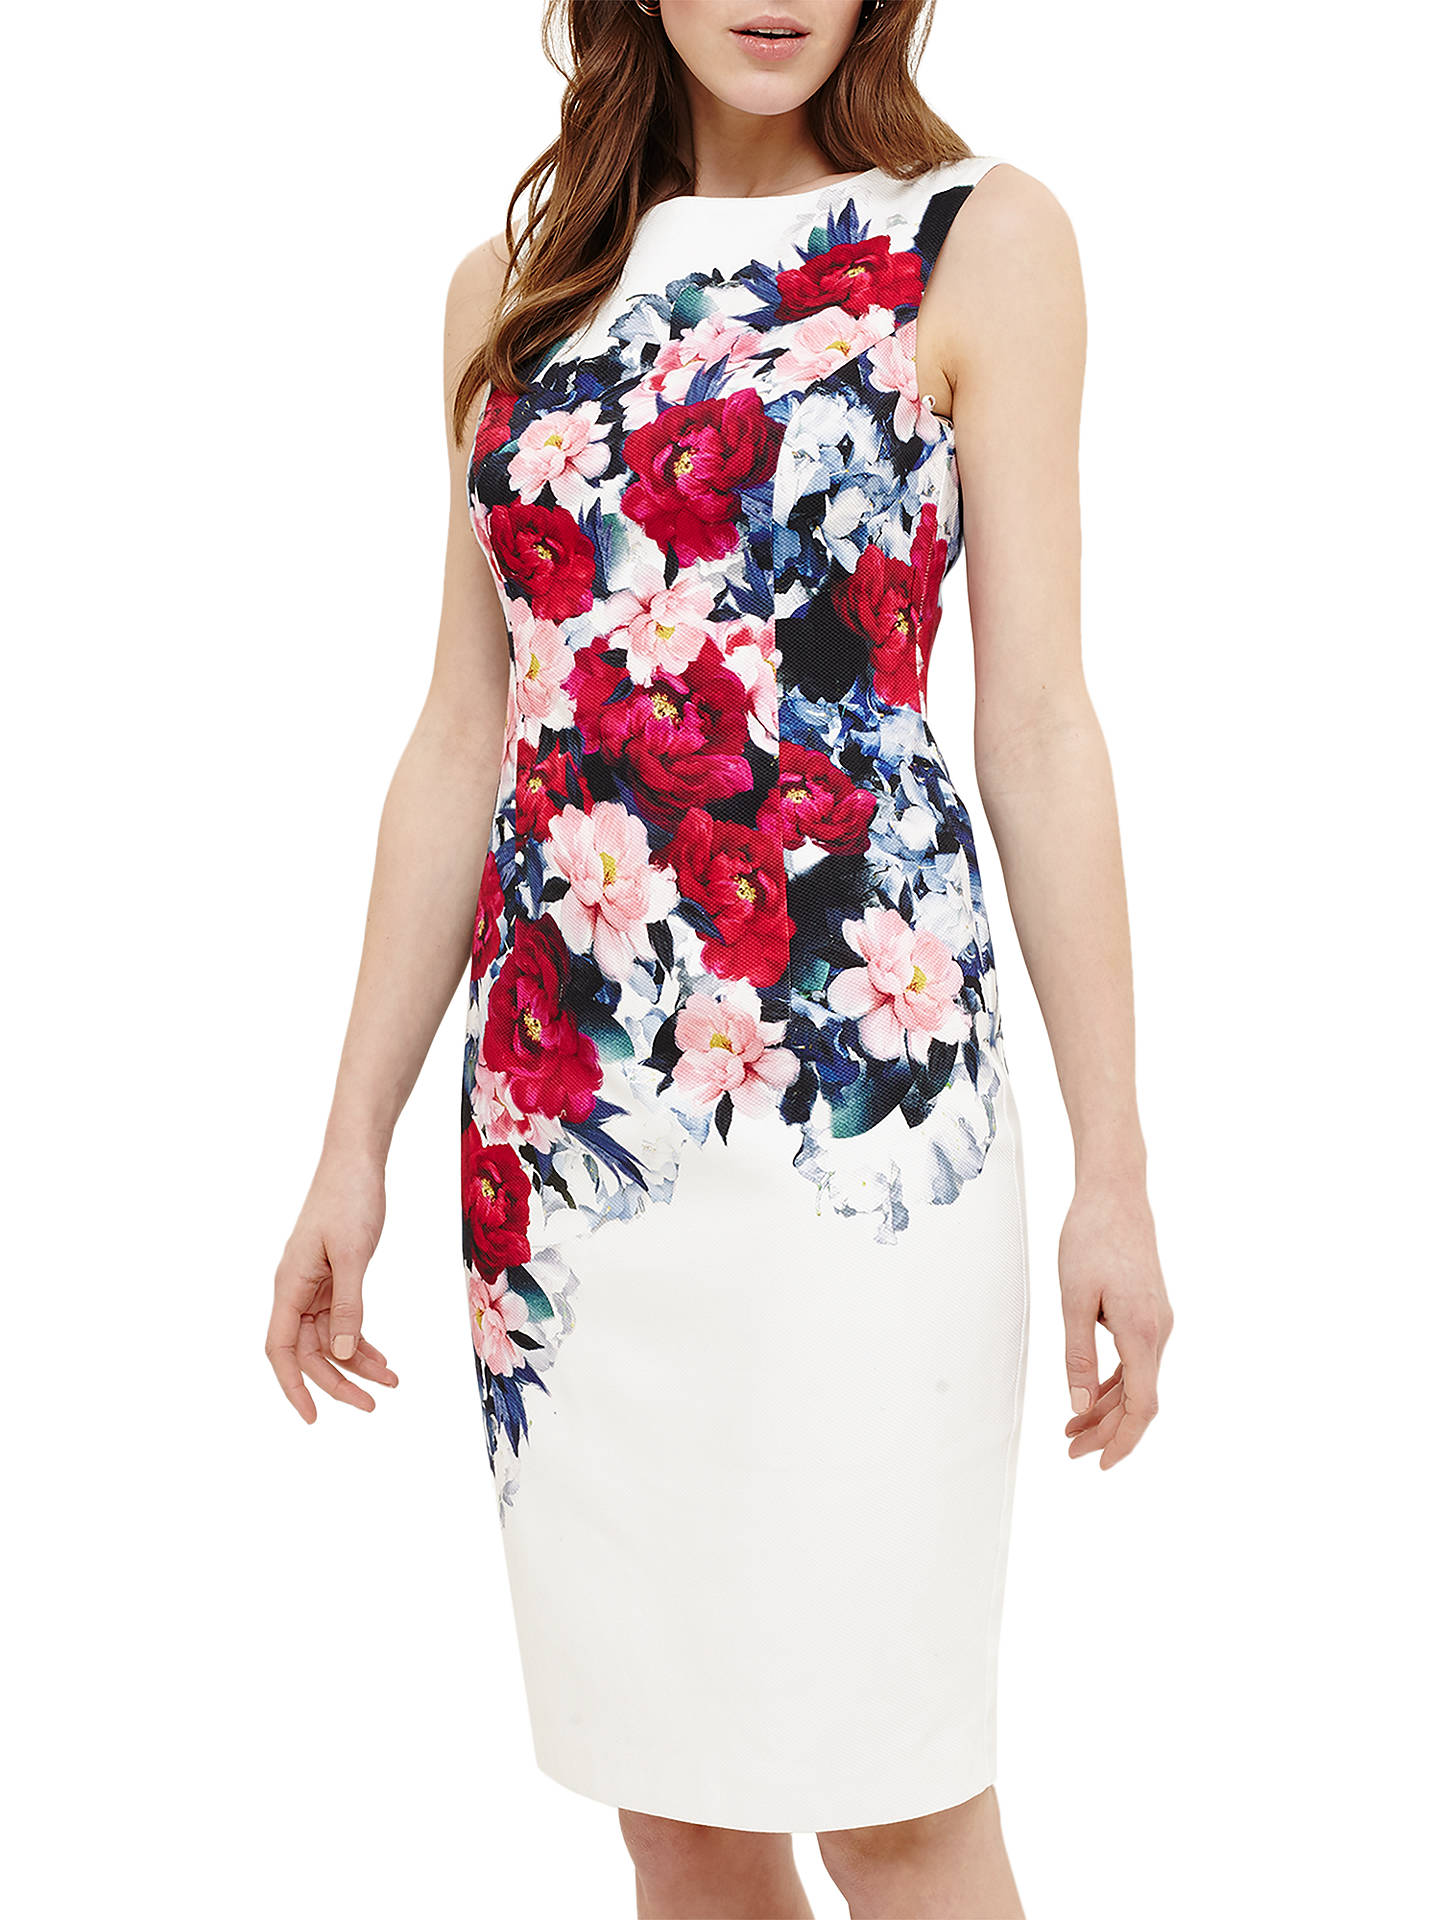 BuyPhase Eight Cassia Floral Printed Dress ef4da213a